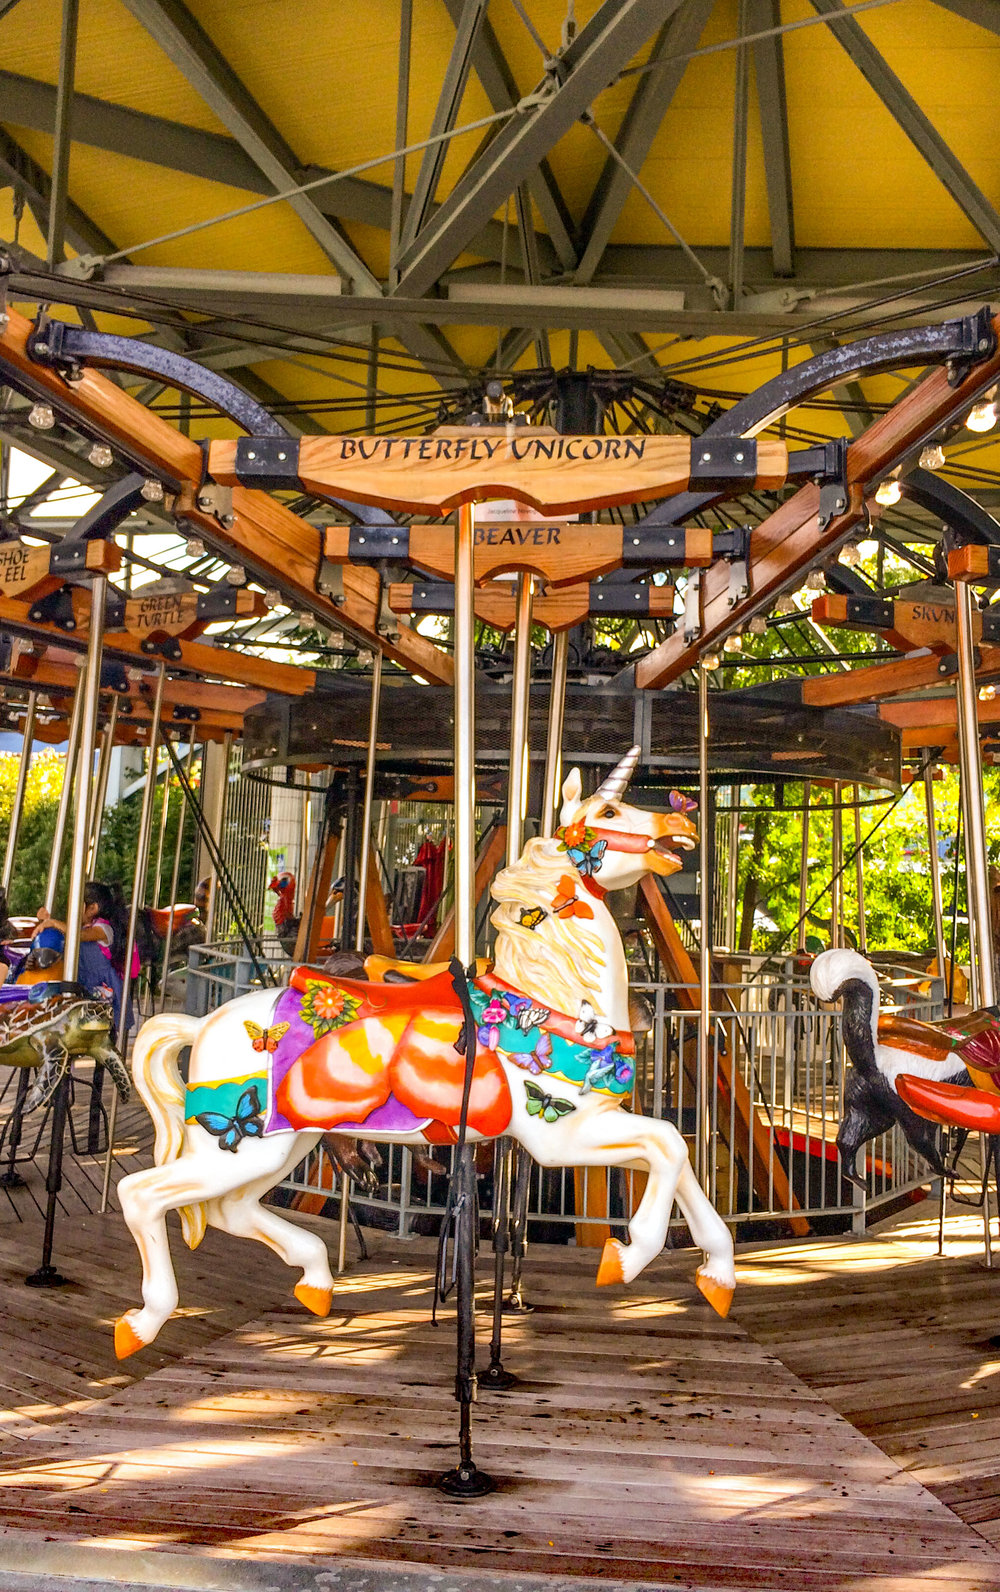 Hudson River Park Carousel, Pier 62 in Manhattan